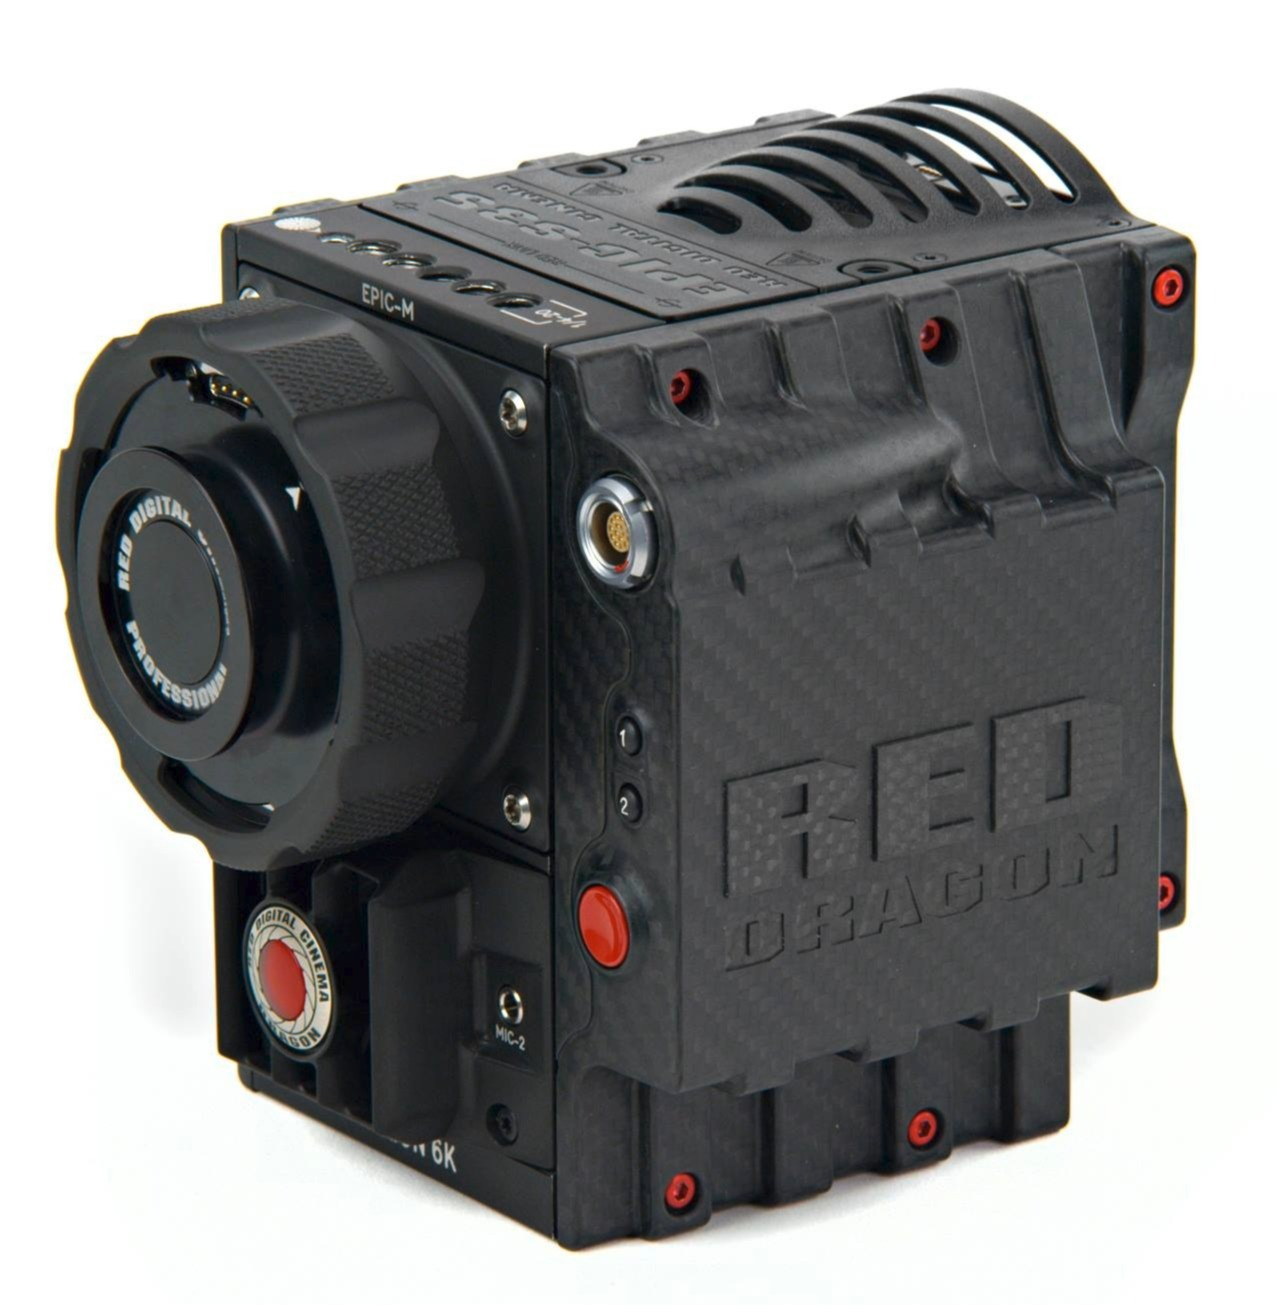 niceladyproductions :      New Camera Body for RED DRAGON    RED Digital Cinema has provided a glimpse of a brand new, carbon fiber wrapped camera body and side handle for the RED DRAGON (magnesium body and mount). Weight of the camera body is said to be a pound lighter than its EPIC brother, and oh yeah, it looks cool! (for $50k, it better).   A bunch of new RED product enhancements will be unleashed in the next few days for IBC 2013.  Keep your eyes peeled (rumours are flying)! Adobe has already announced native 6K RED DRAGON support in Premiere Pro.    RED ONE OWNERS:    A major RED ONE firmware upgrade has been announced (build 32.0.3) with the following improvements:    Added REDColor2, REDColor3 and REDLogFilm   Fix  ISO  setting after MX restore   Fix  HANC  metadata  RECORD  flag   Fix Bomb  EVF  intensity range   Added 512GB support    This is BIG news, as RED ONEs will finally be able to take advantage of all the lusciousness of REDColor3. Get the firmware upgrade  here .